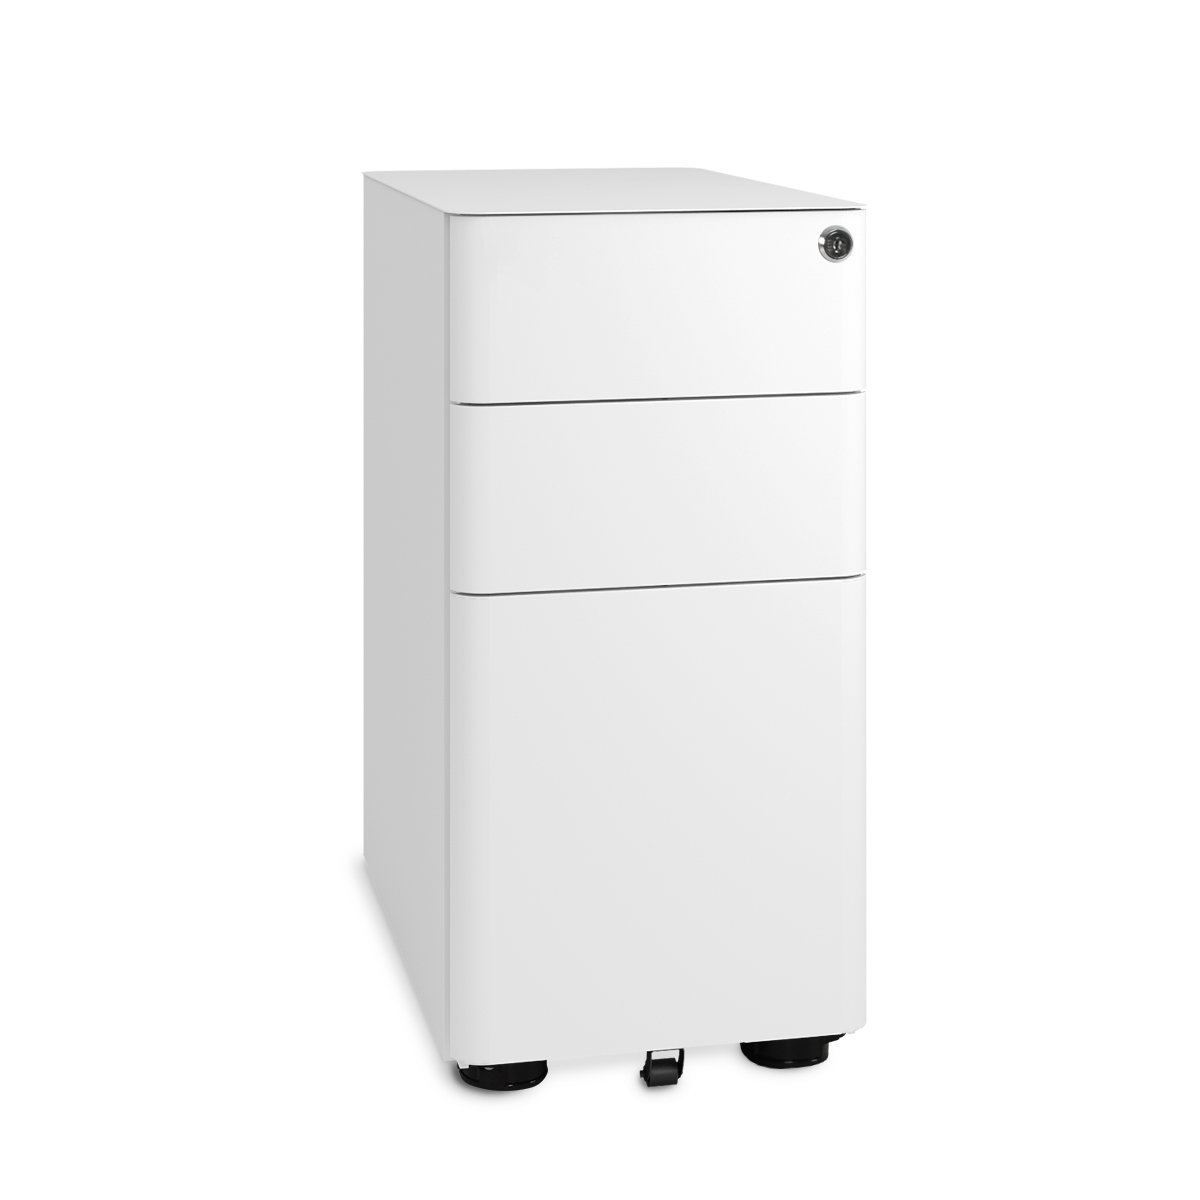 DEVAISE 3-Drawer Slim Stow Mobile File Cabinet in White, Fully Assembled Except Casters, Legal/Letter CZBOAO